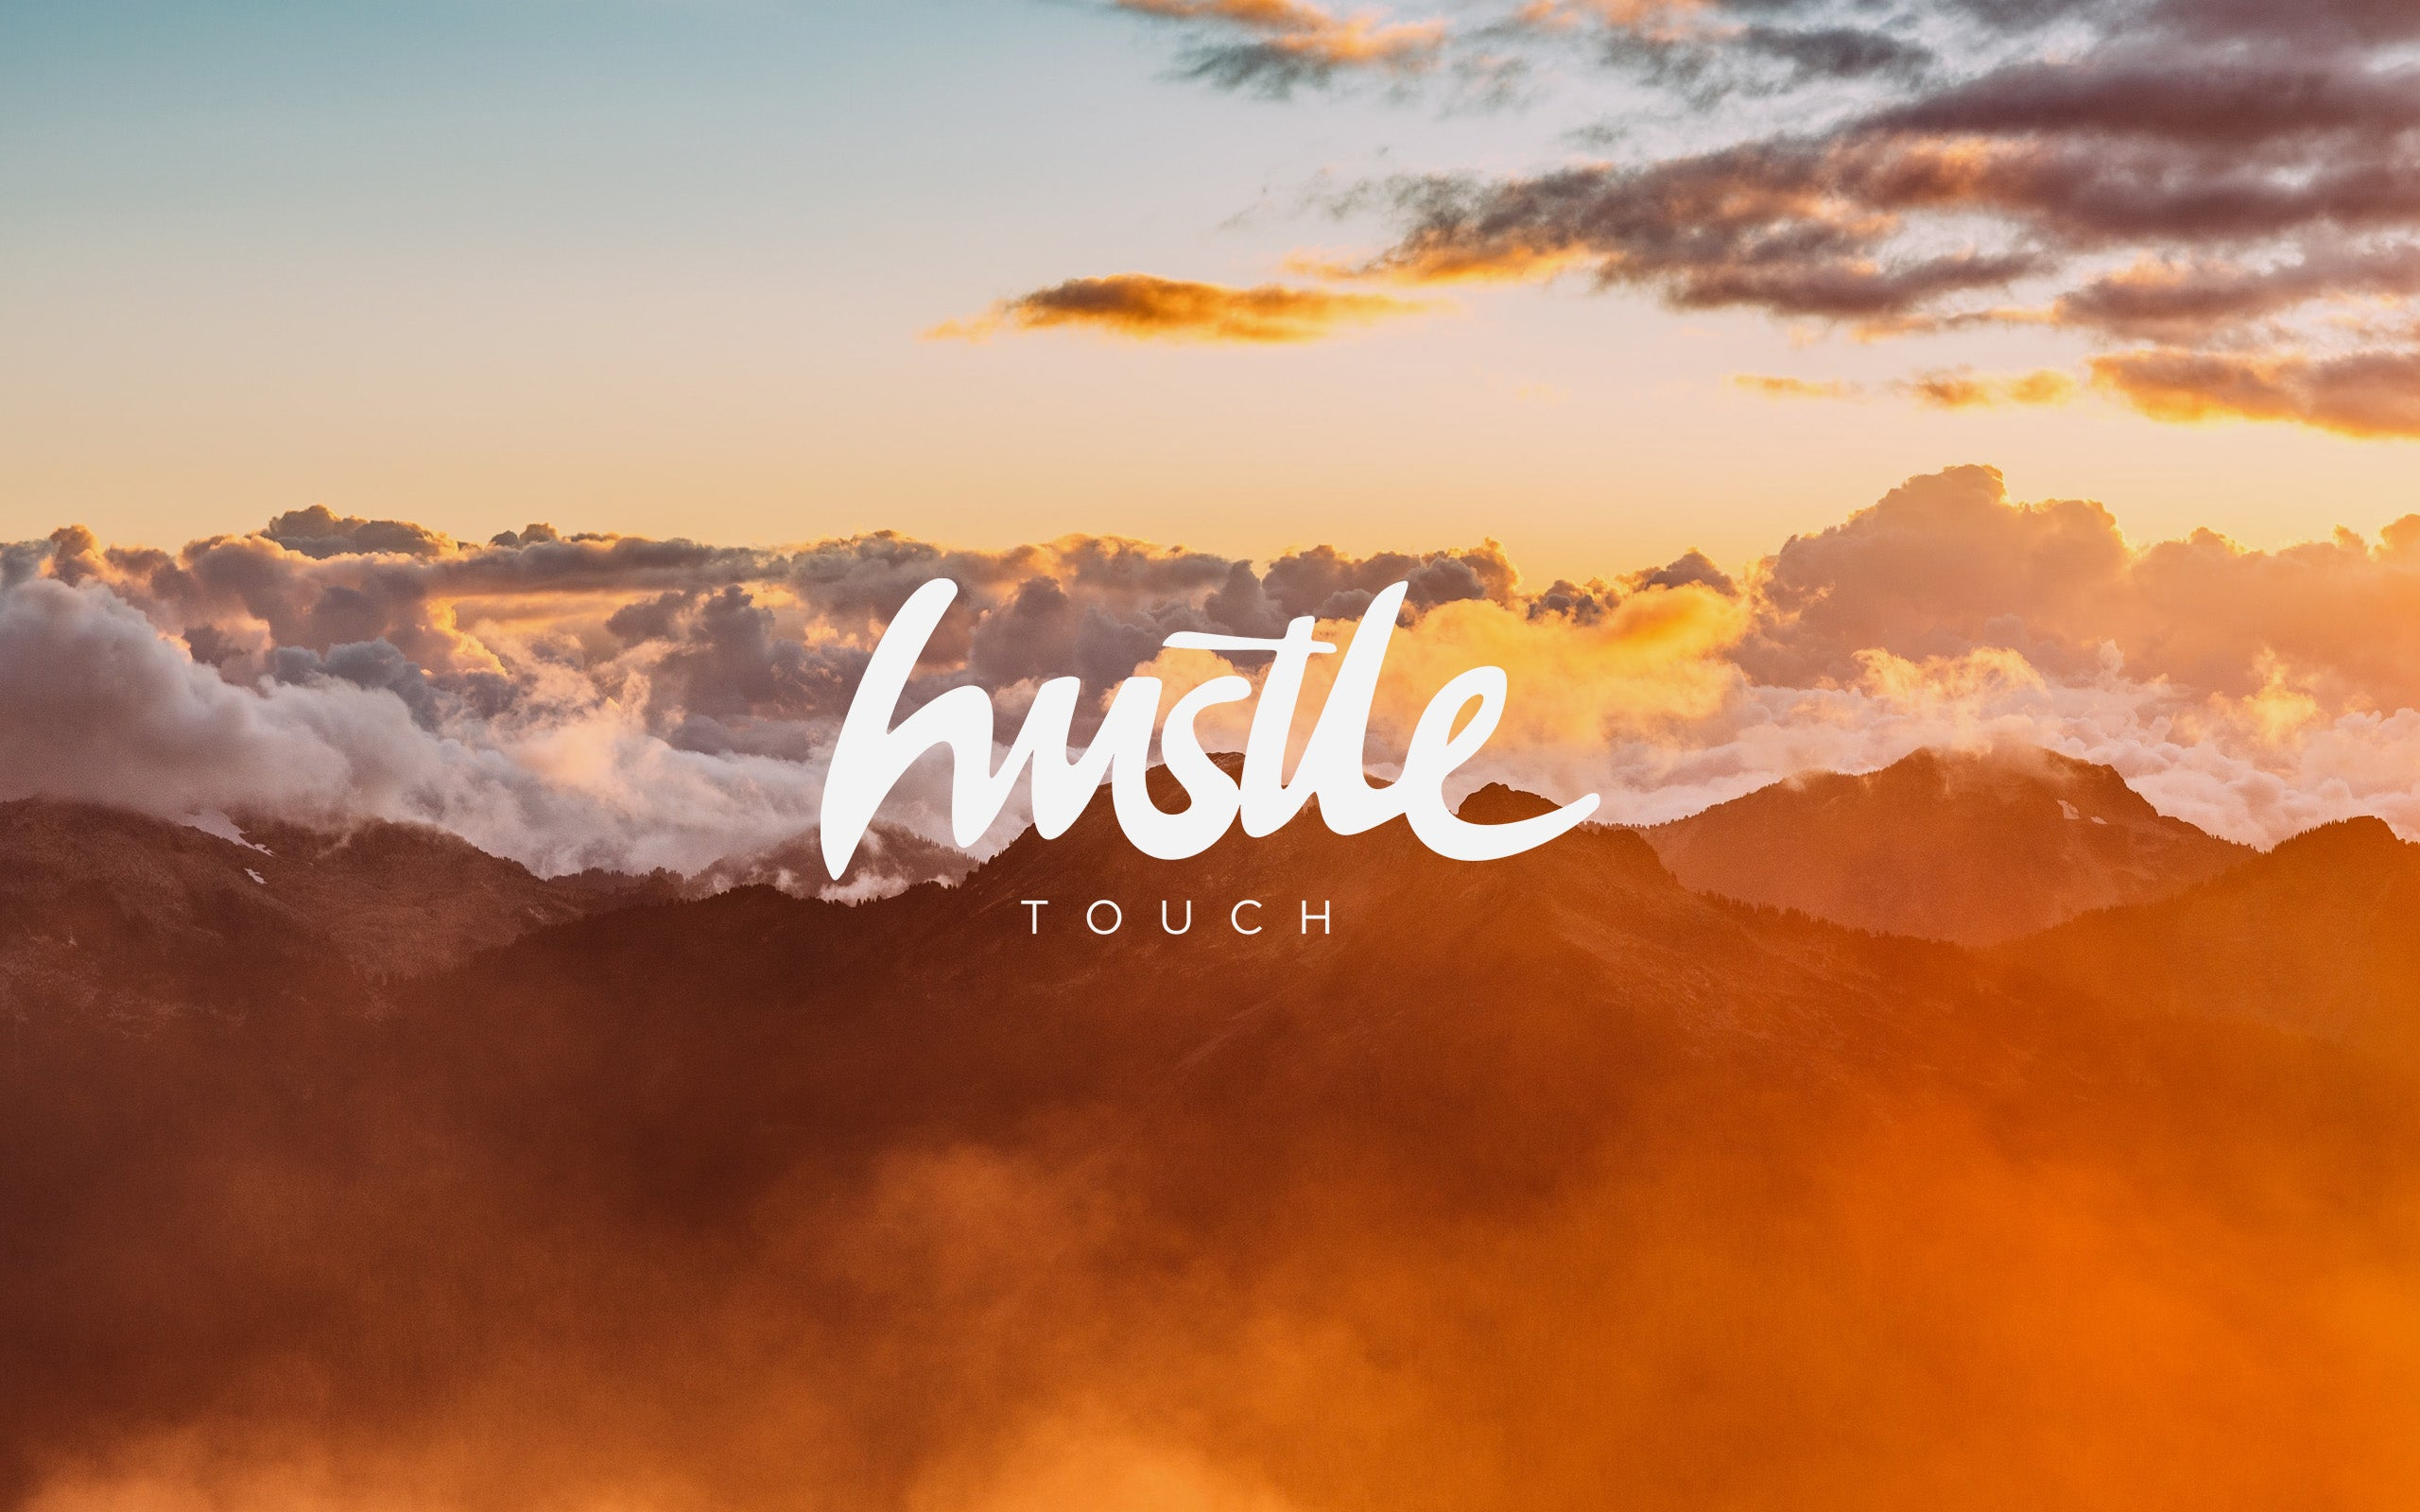 Get our Hustle Touch Wallpaper 099 for free. Give your setup a special hustle vibe with our wallpaper.